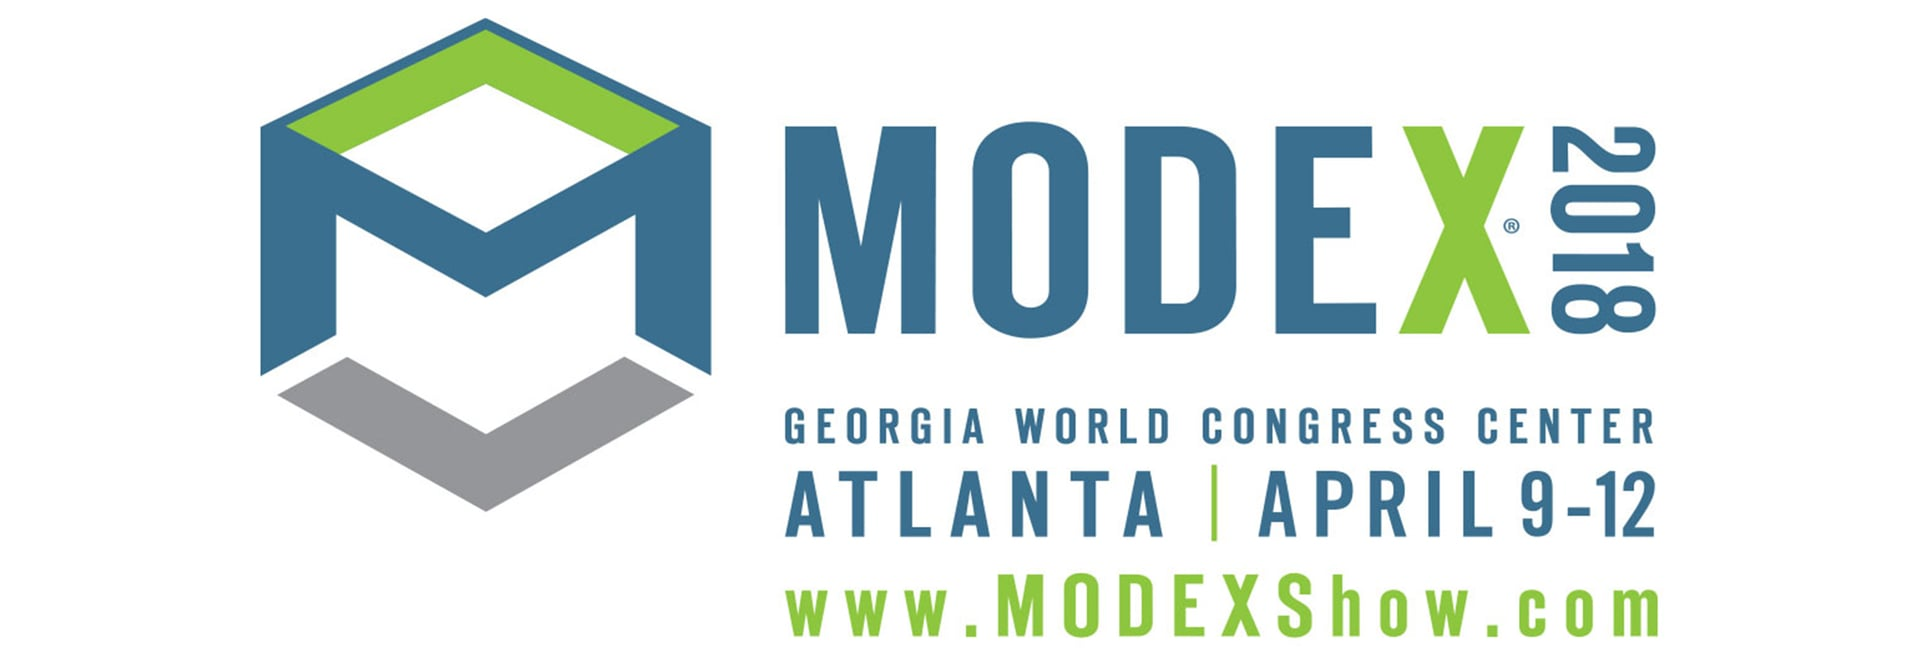 All for logistics - A brief look back at Modex 2018